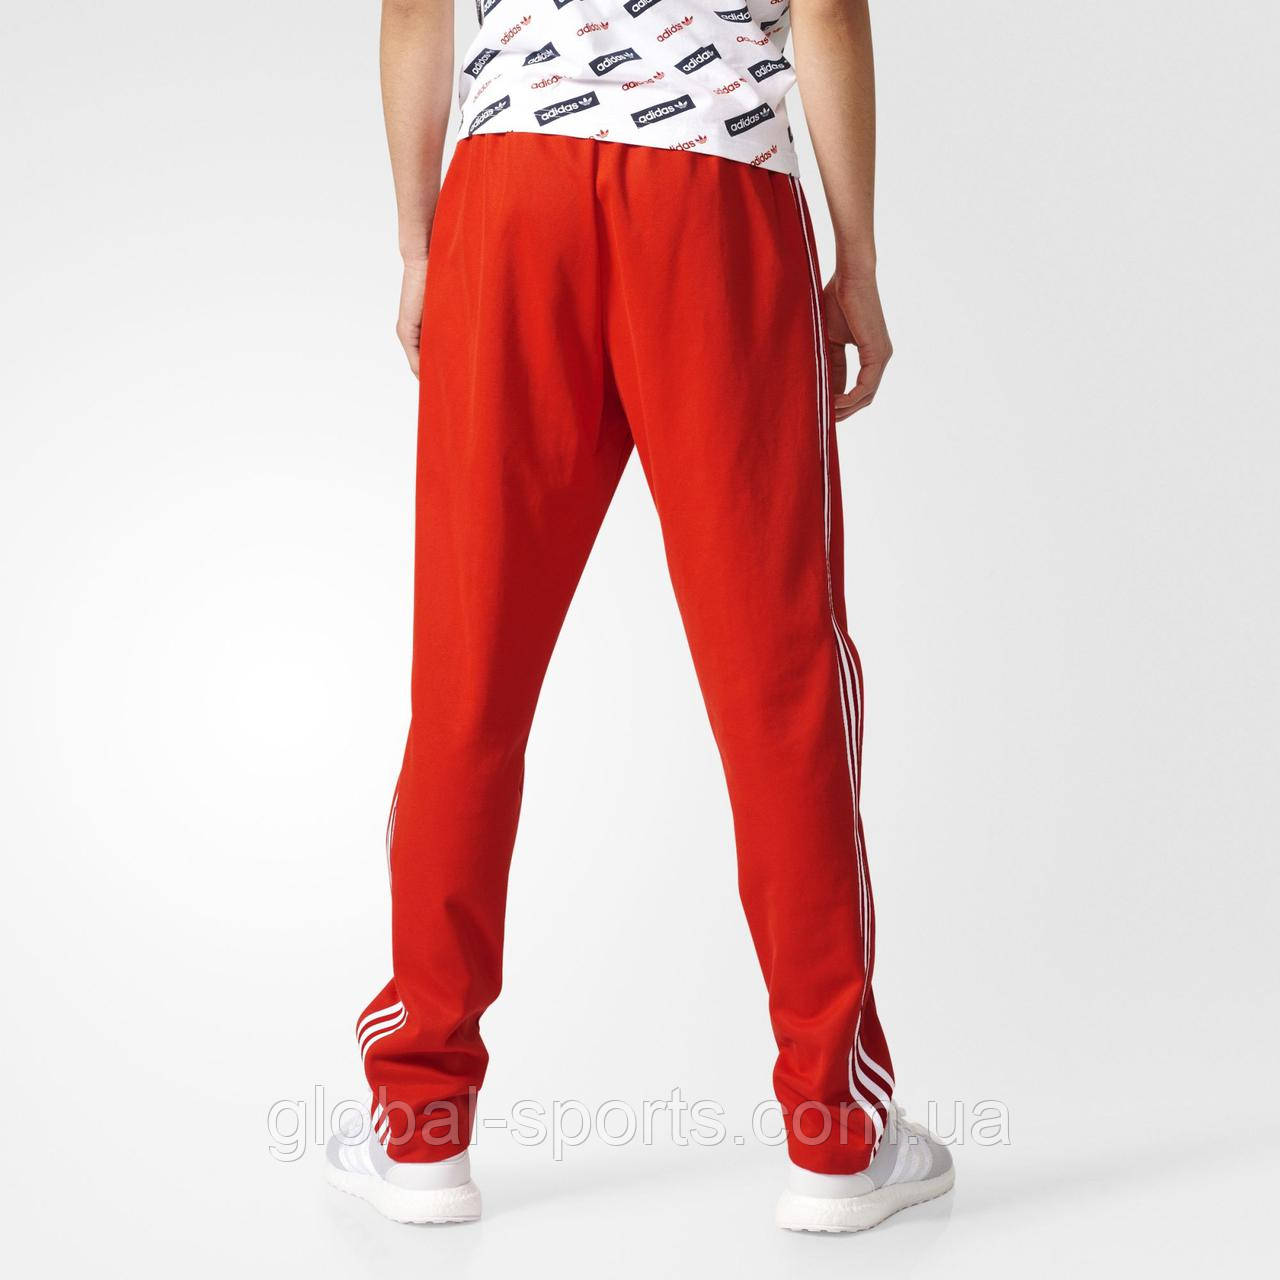 ec9c8ba2db0776 ... Мужские спортивные штаны Adidas Originals Block(Артикул:BK7867), ...